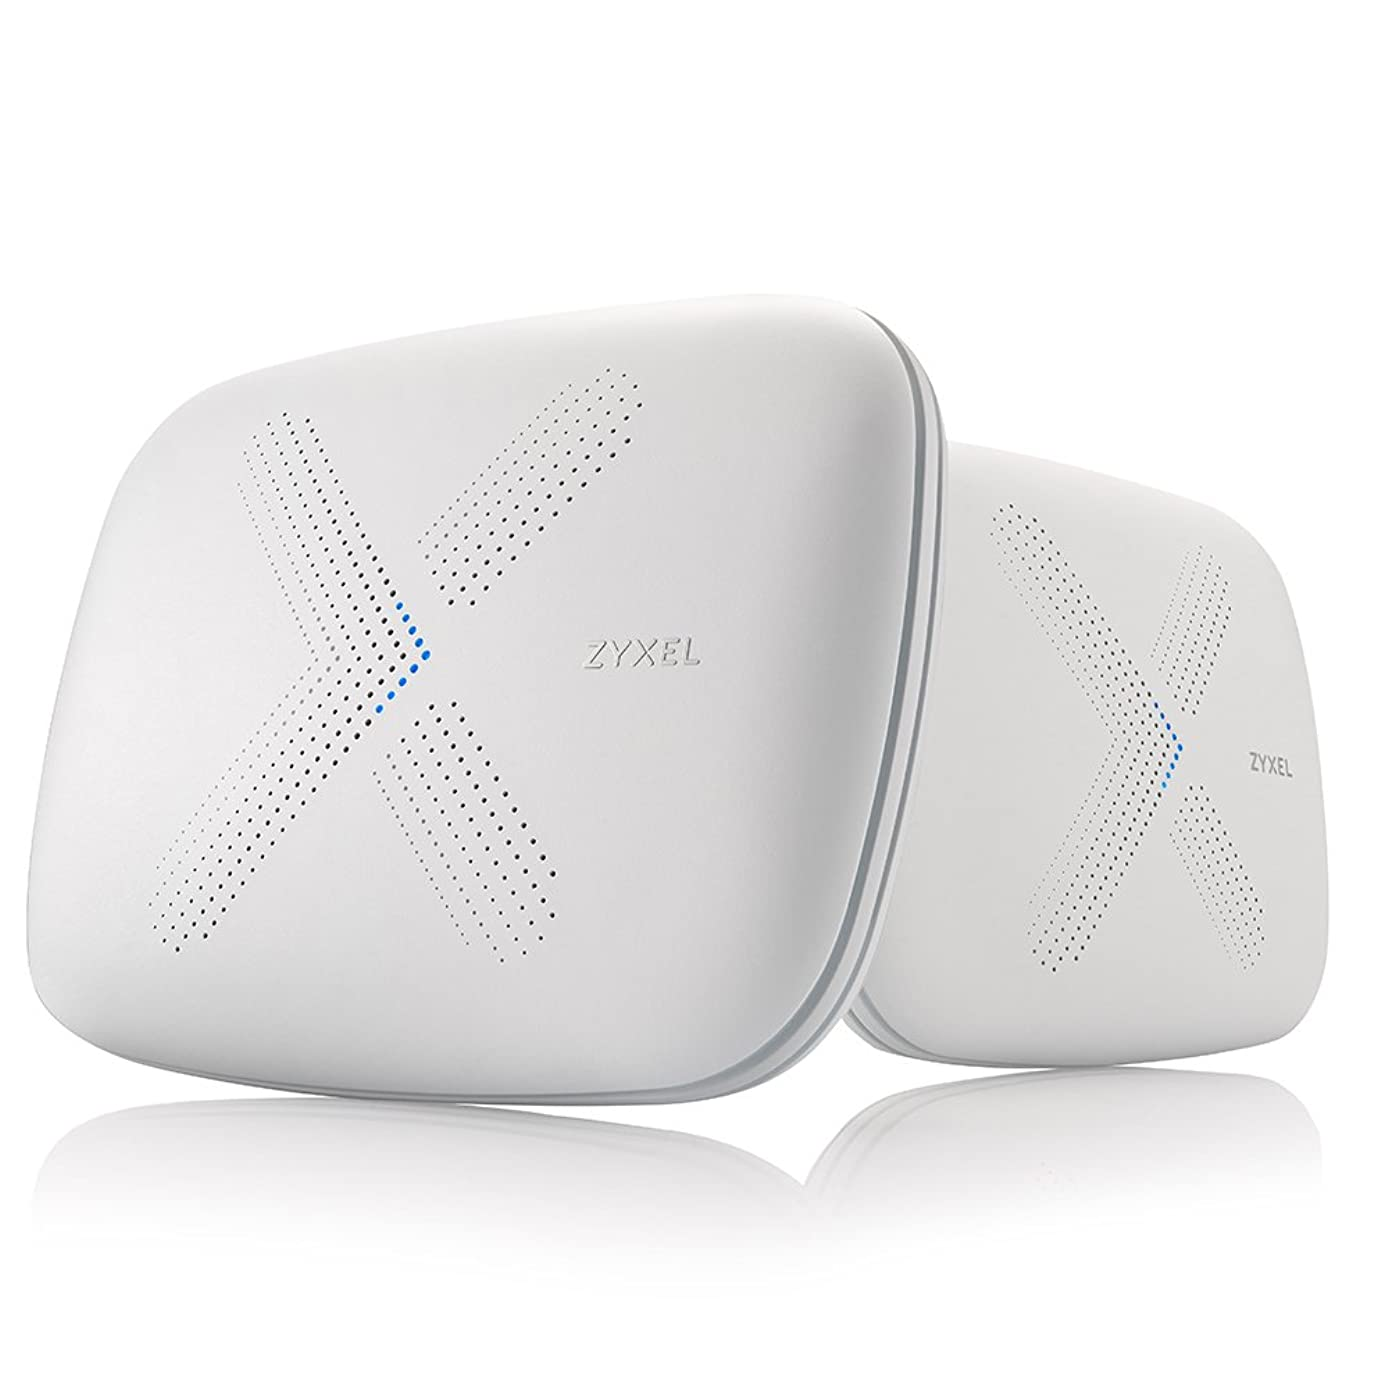 ZyXEL WSQ50TWIN Multy X Kit, AC3000 Home Wi-Fi Mesh System Up to 5,000 sq. ft, Tri-Band Technology